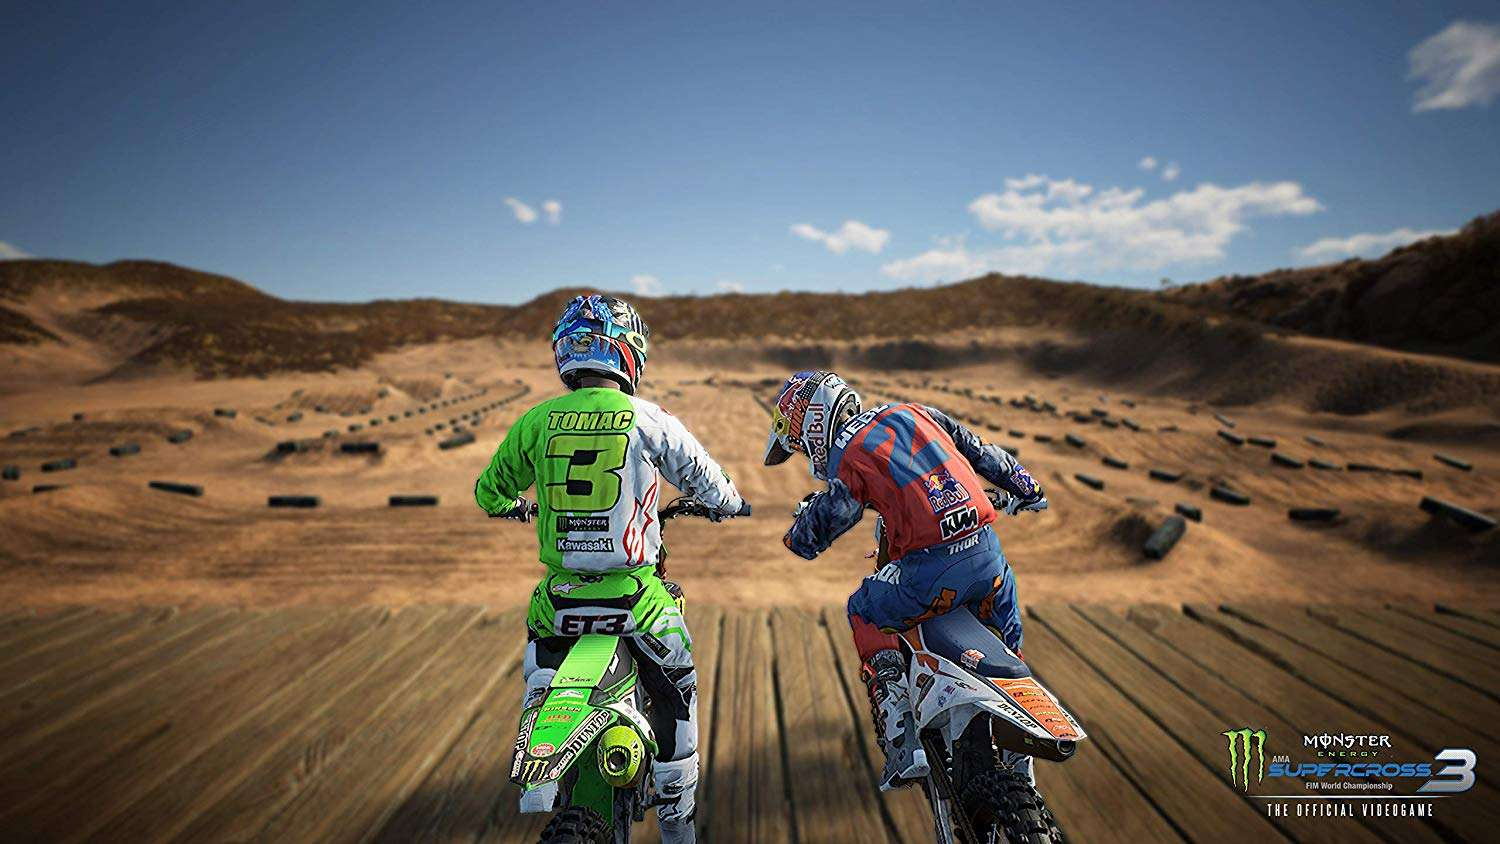 Monster Energy Supercross: The Official Videogame 3 #2